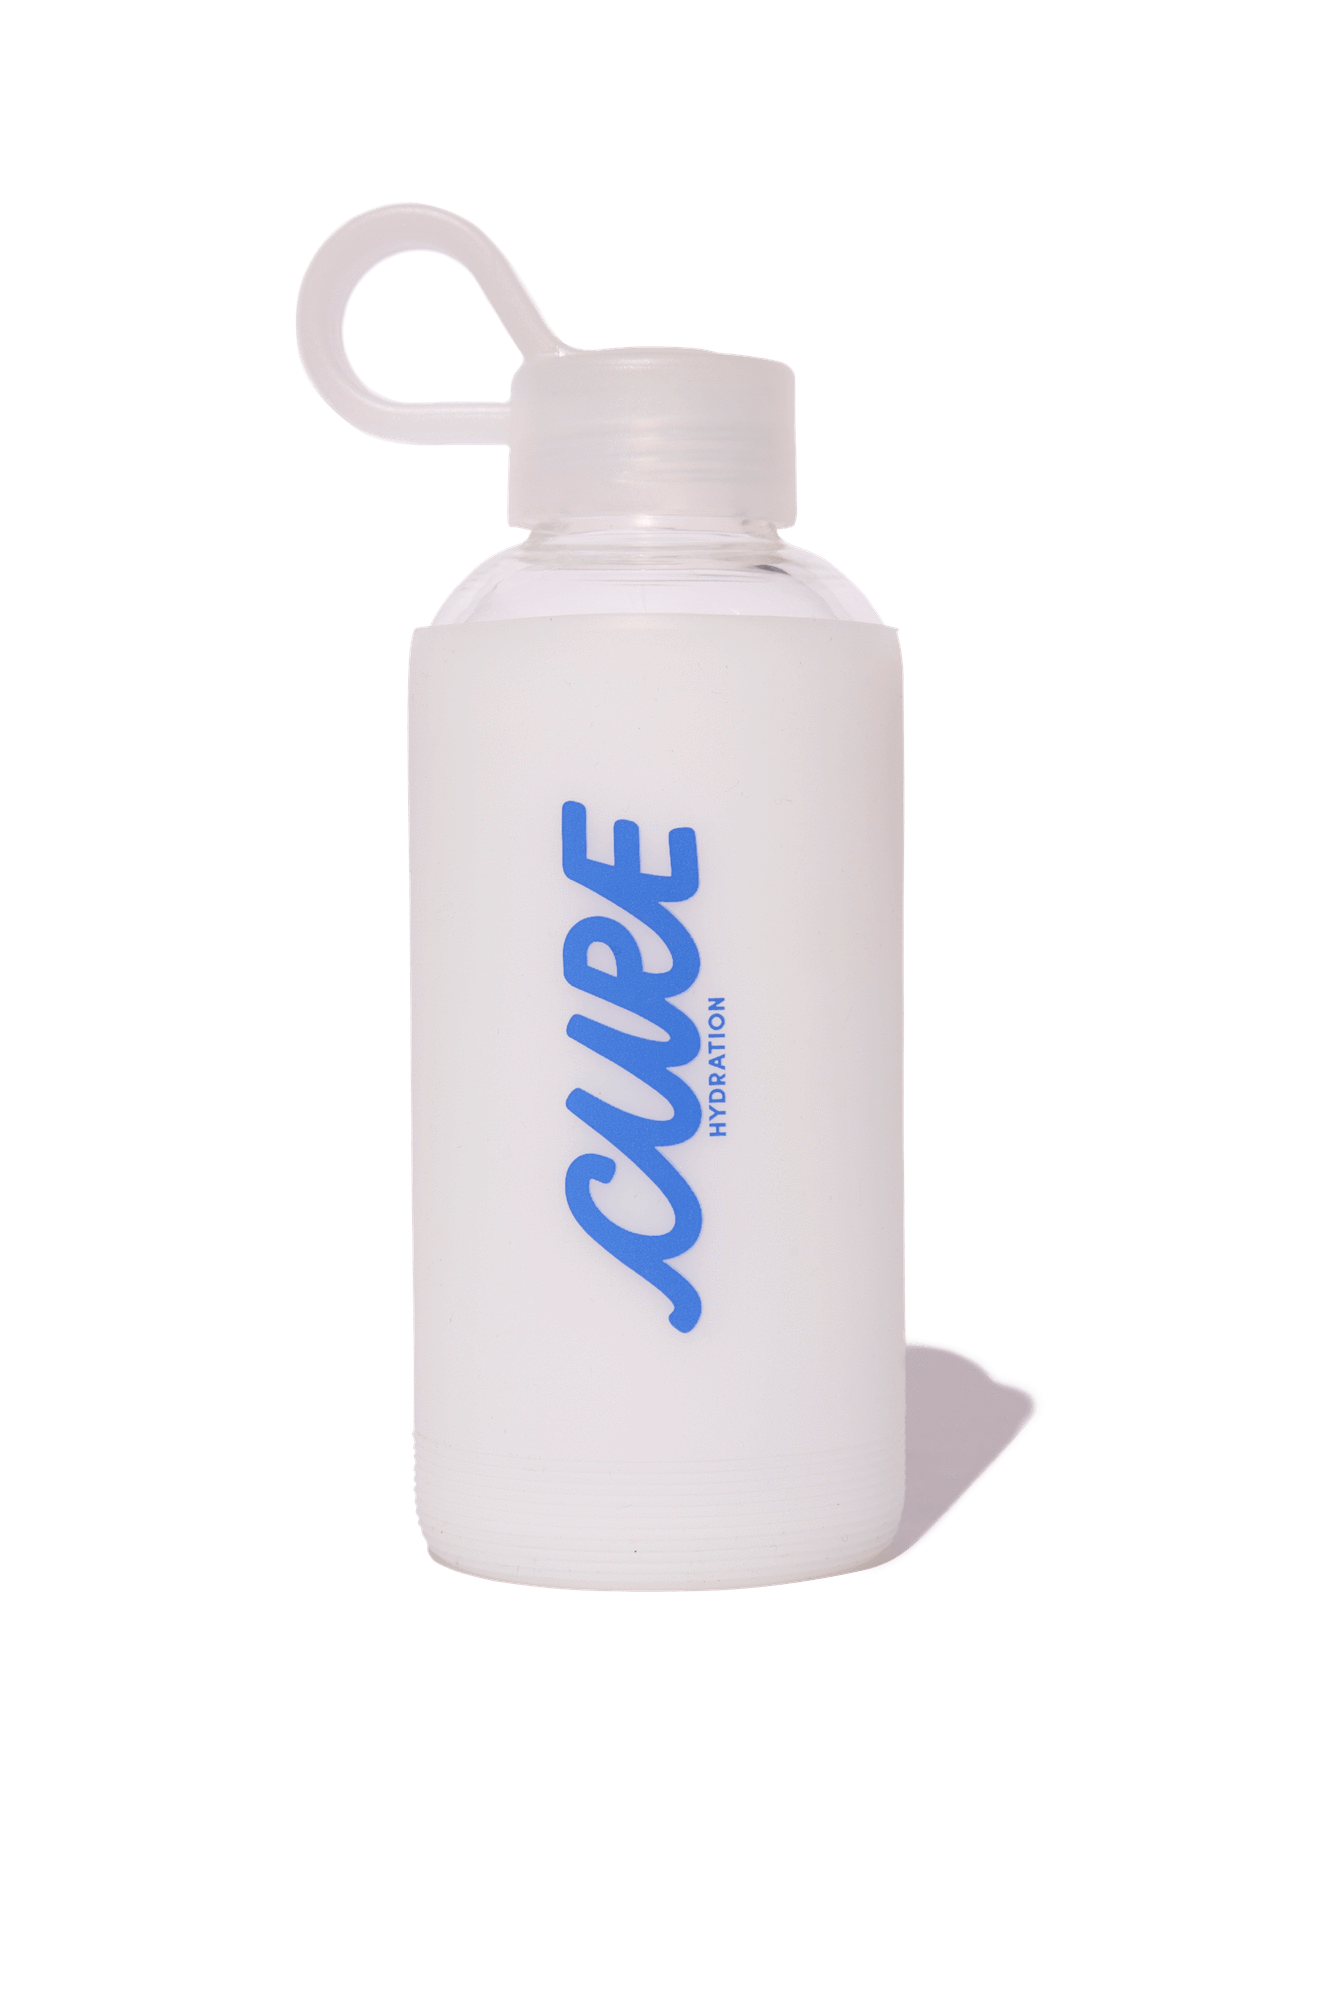 16oz Glass Water Bottle.